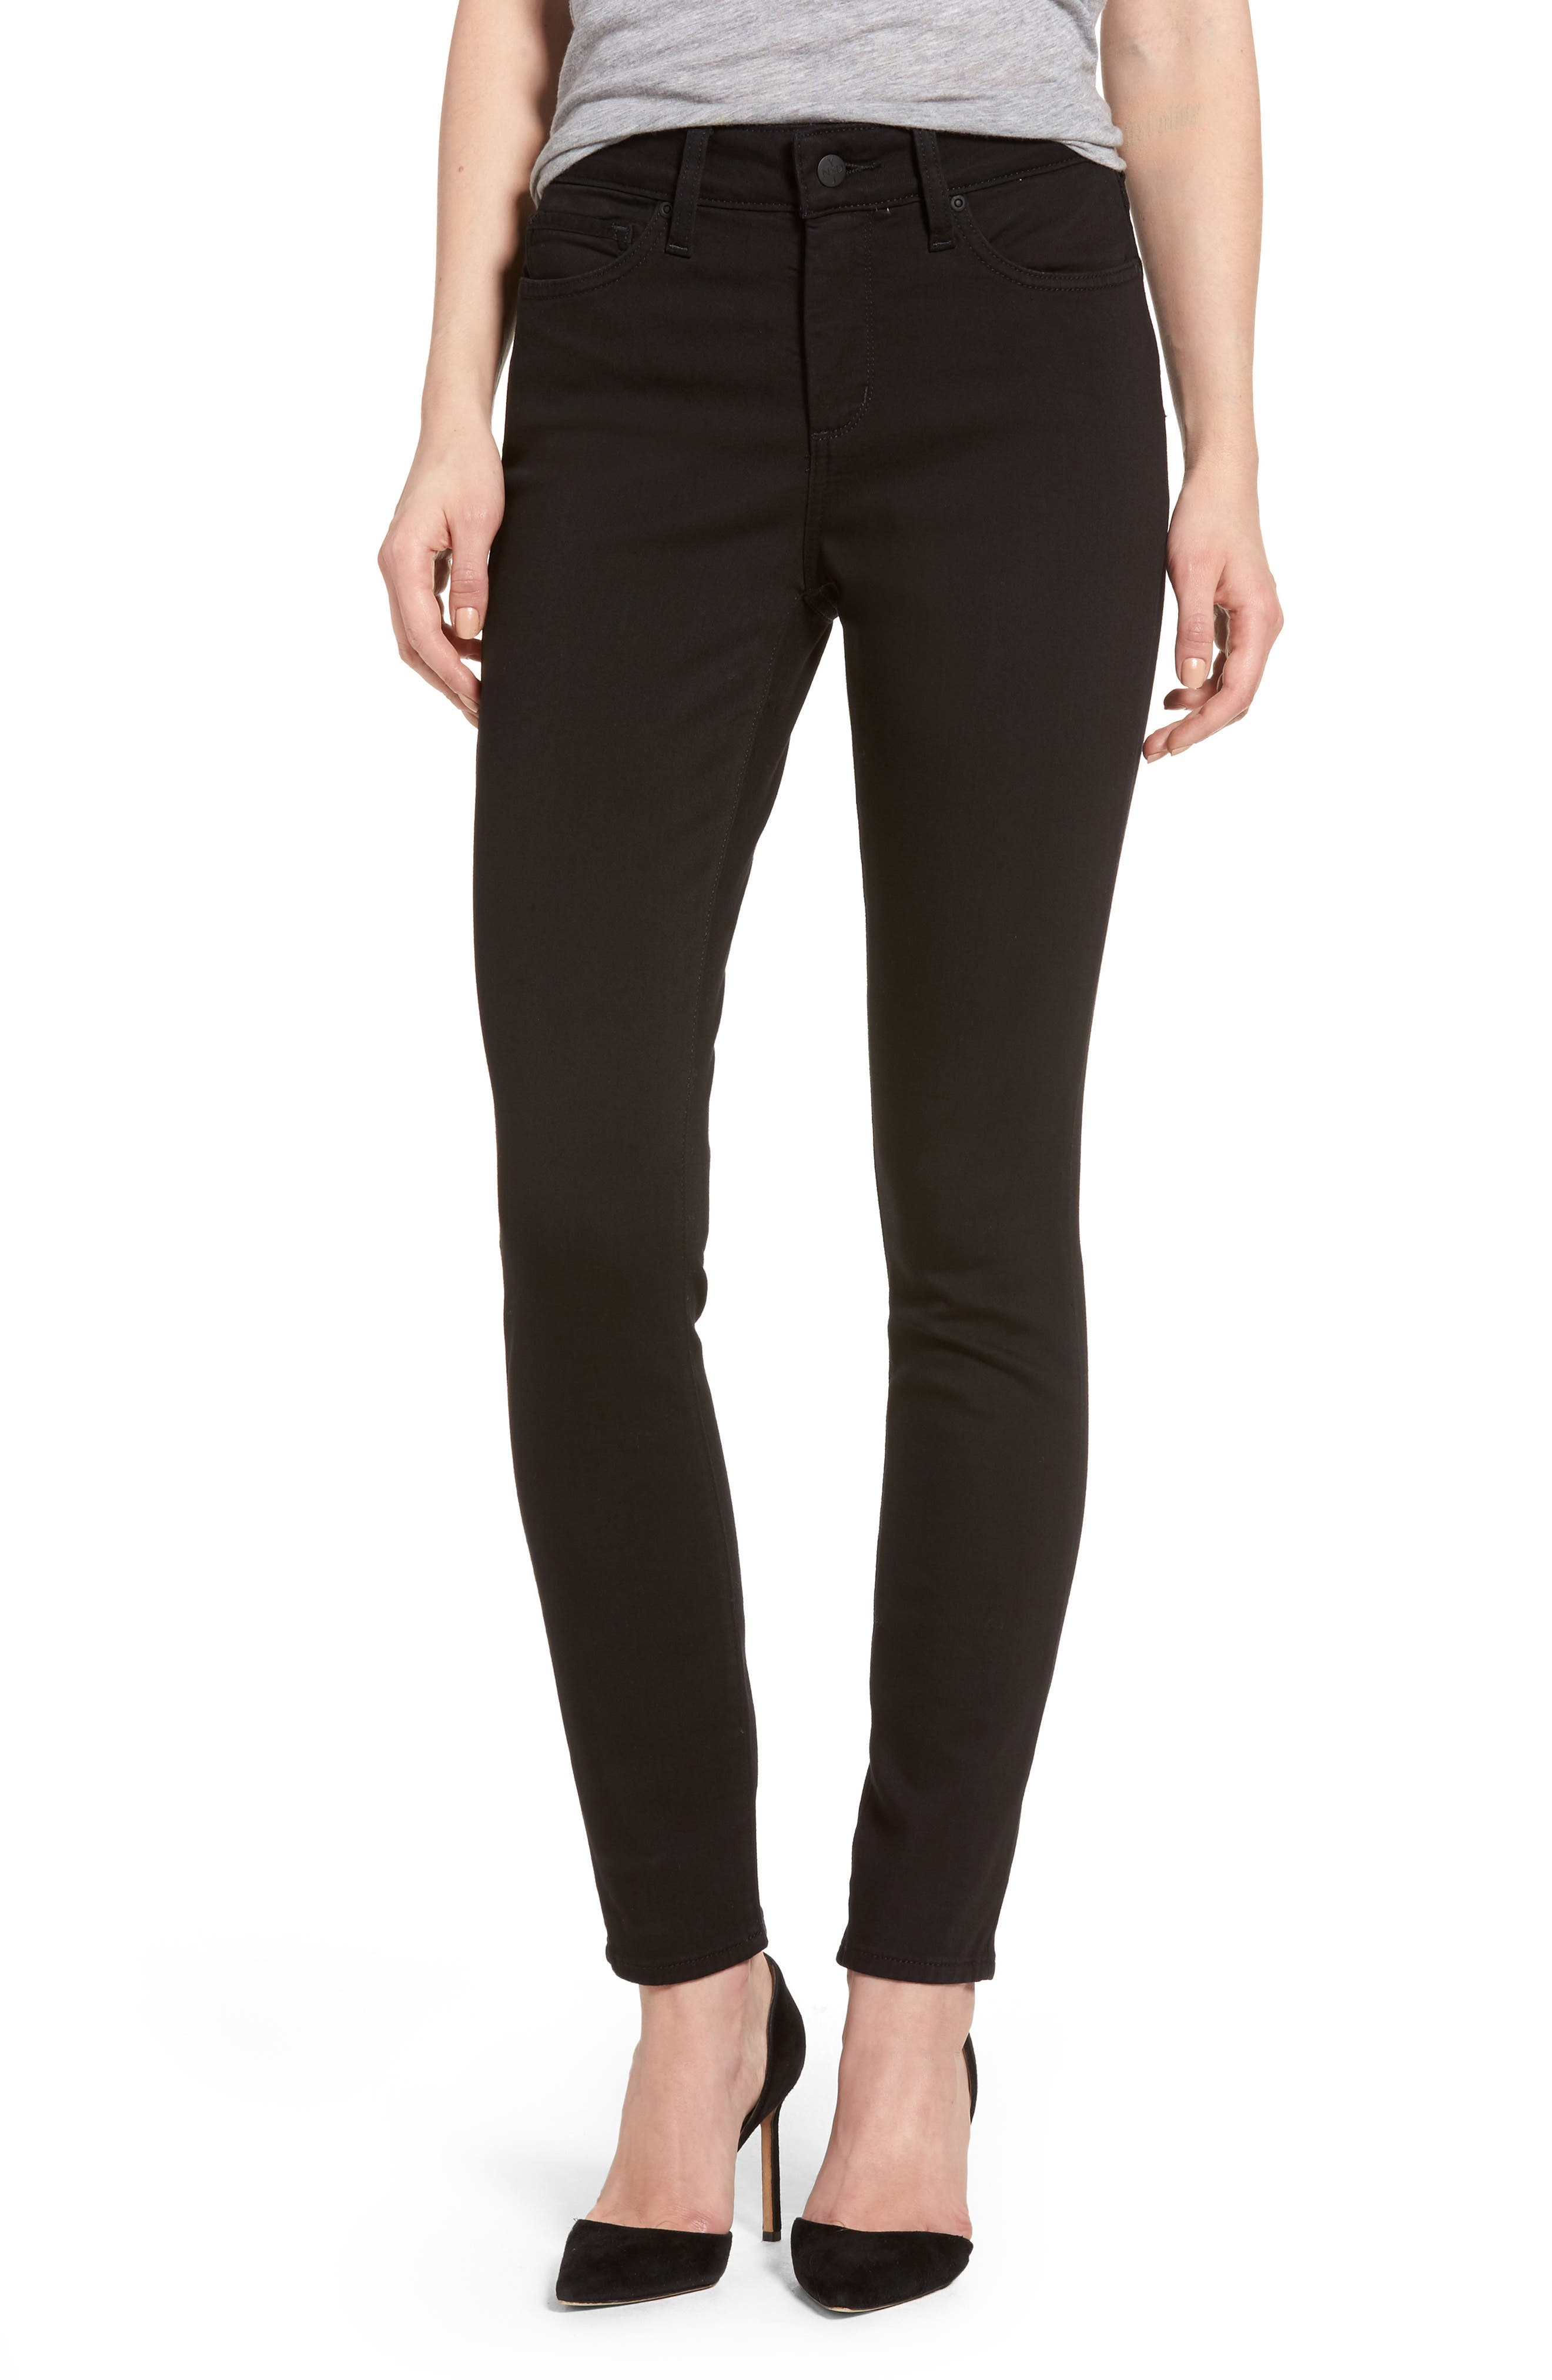 Ami Stretch Skinny Jeans,                             Main thumbnail 1, color,                             Black